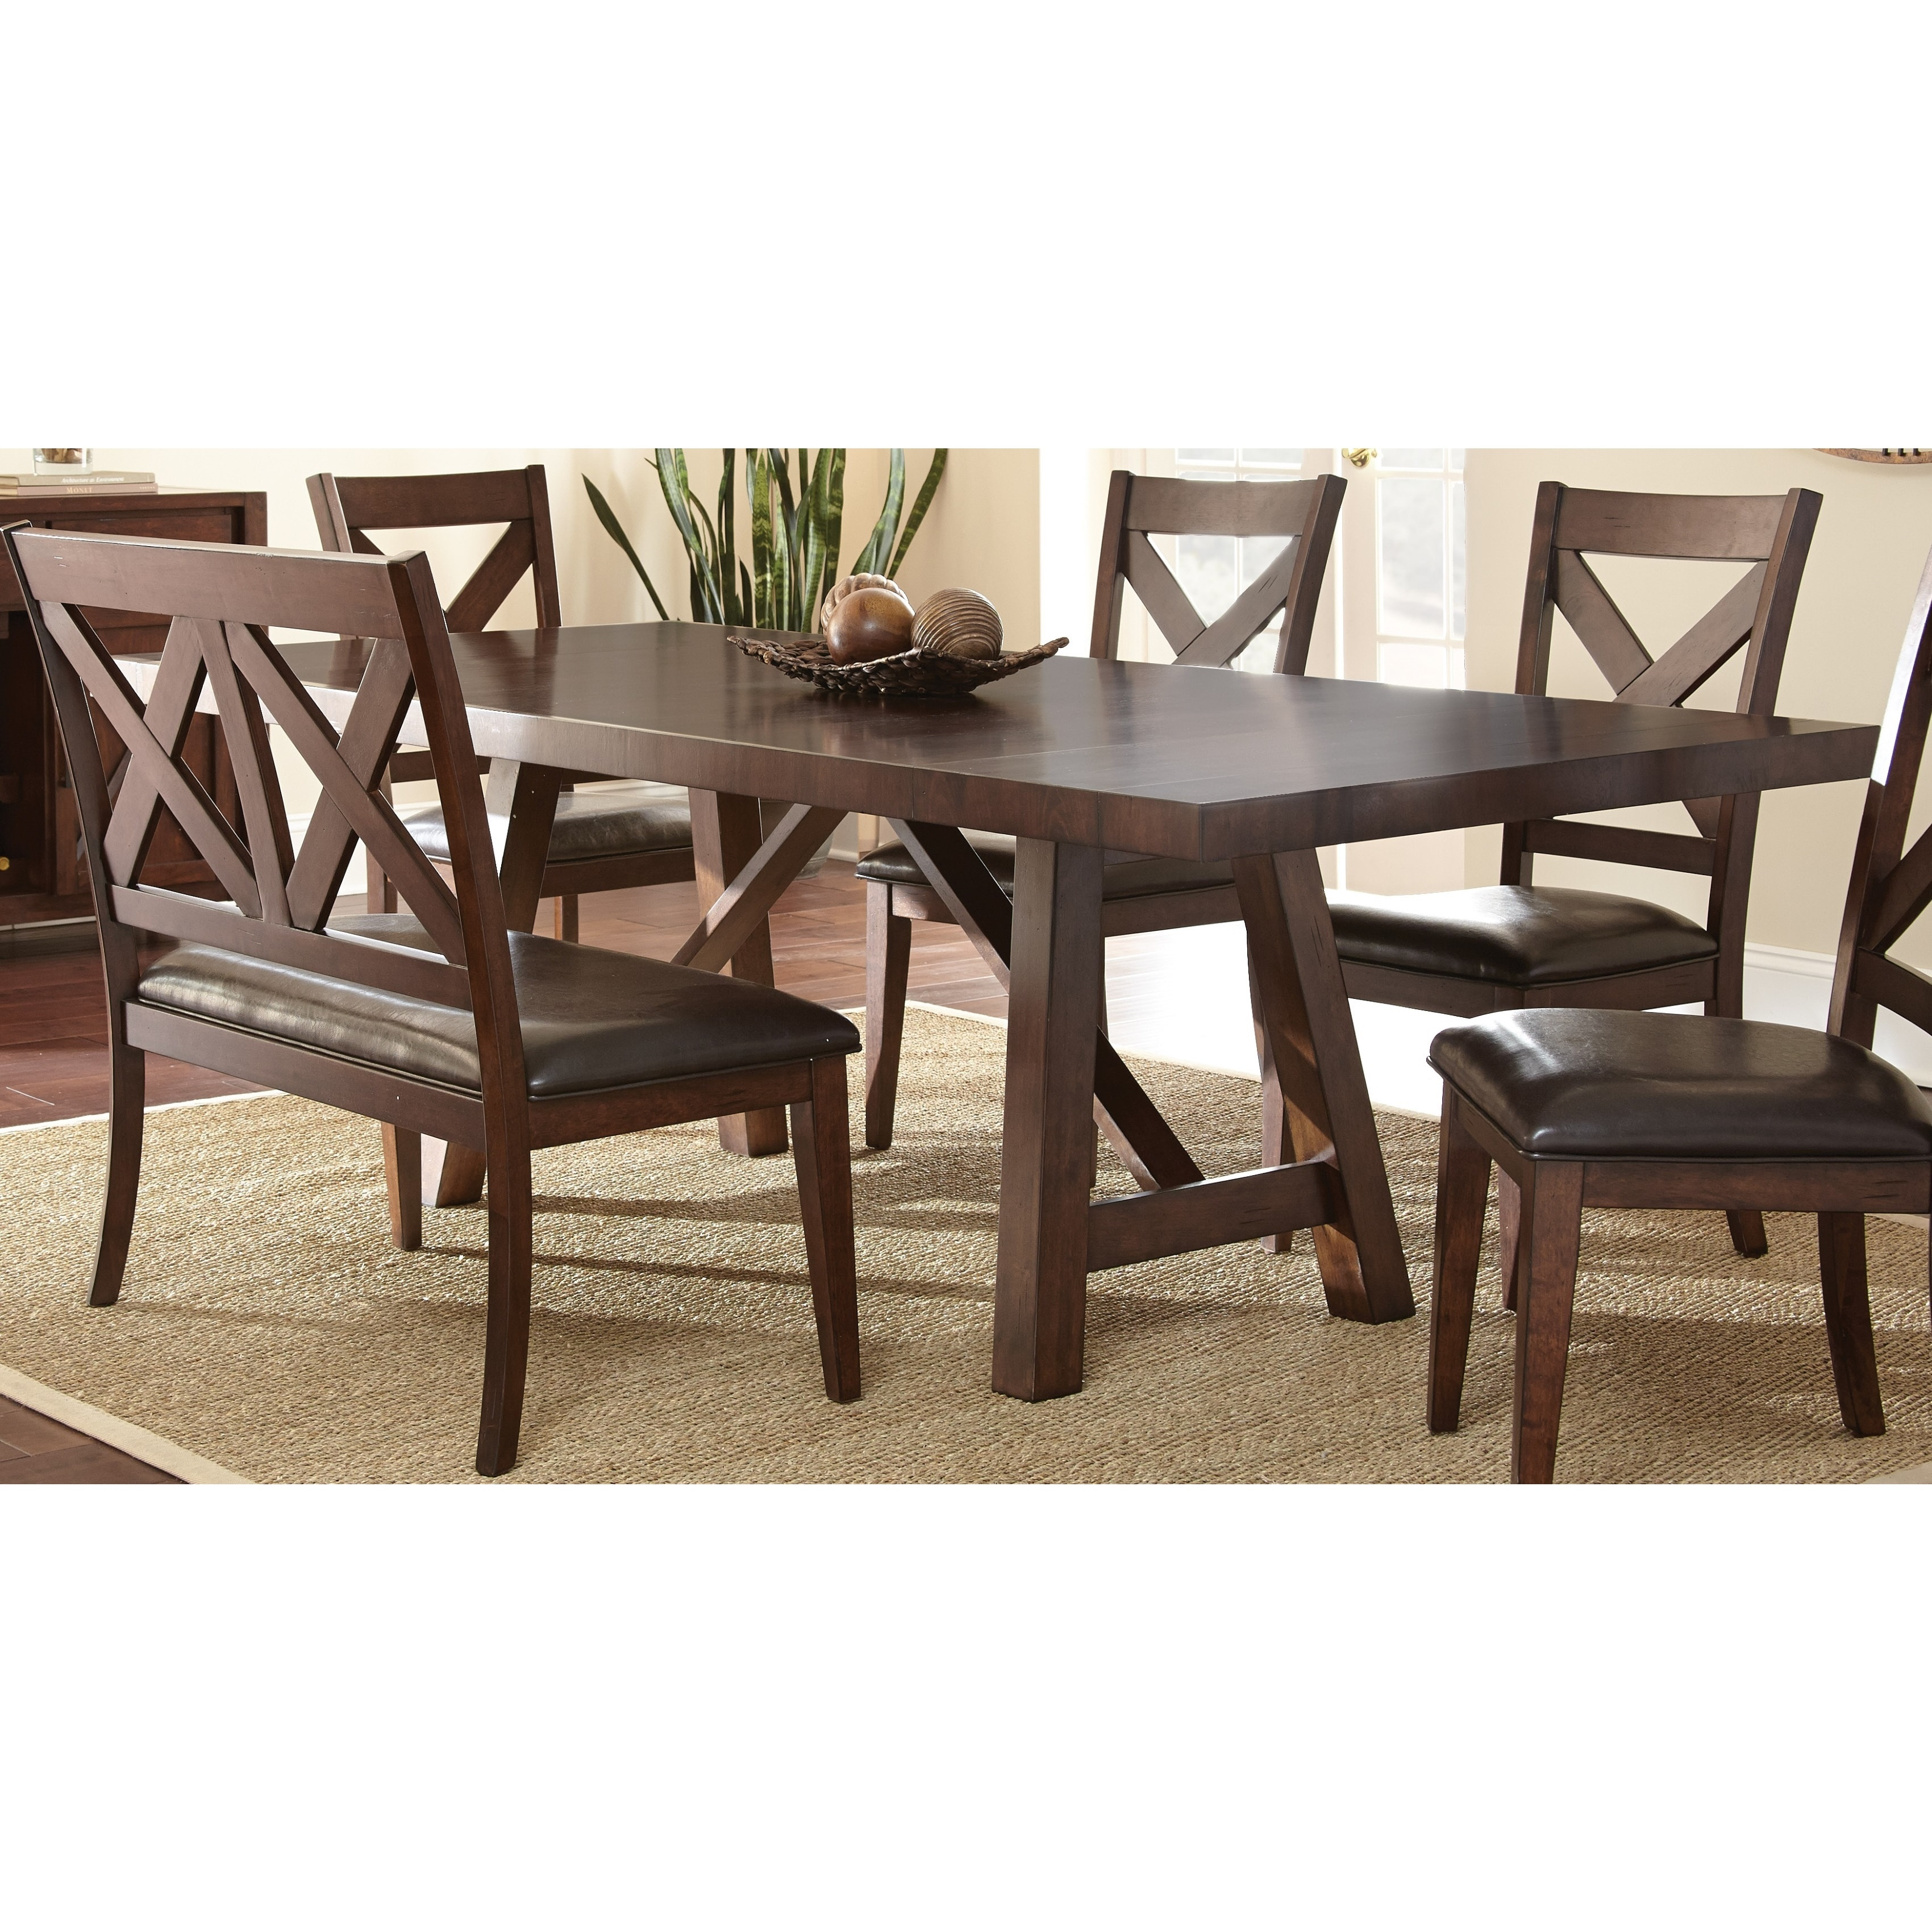 Greyson Living Chester 96 Inch Dining Table Espresso Overstock 10809415